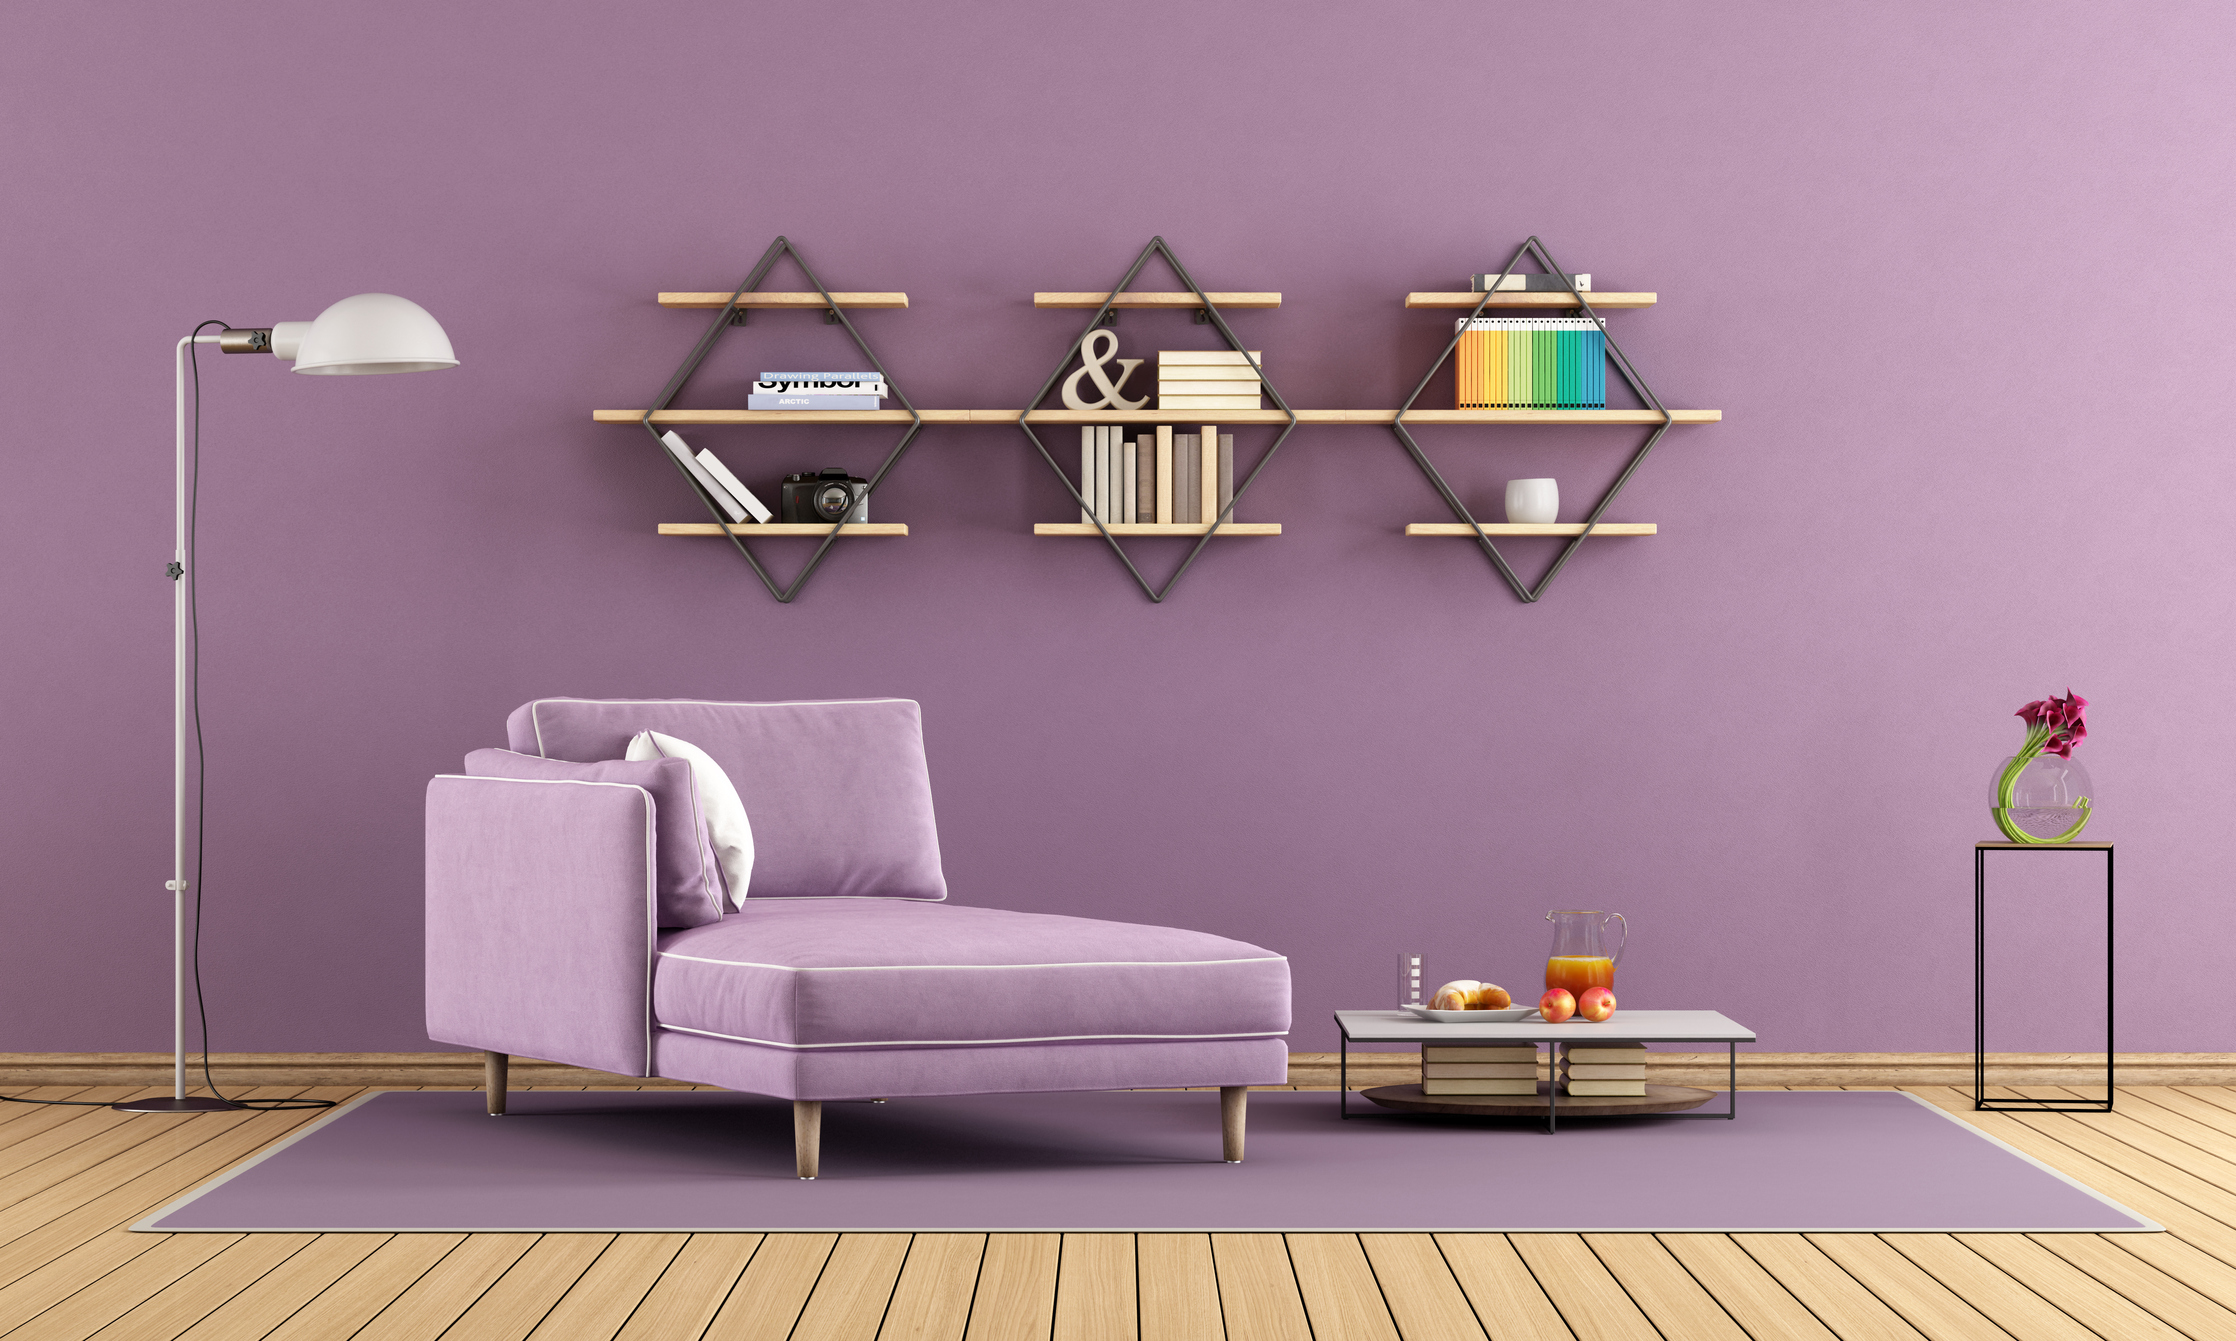 Modern living room with purple chaise lounge and shelves on wall - 3d rendering